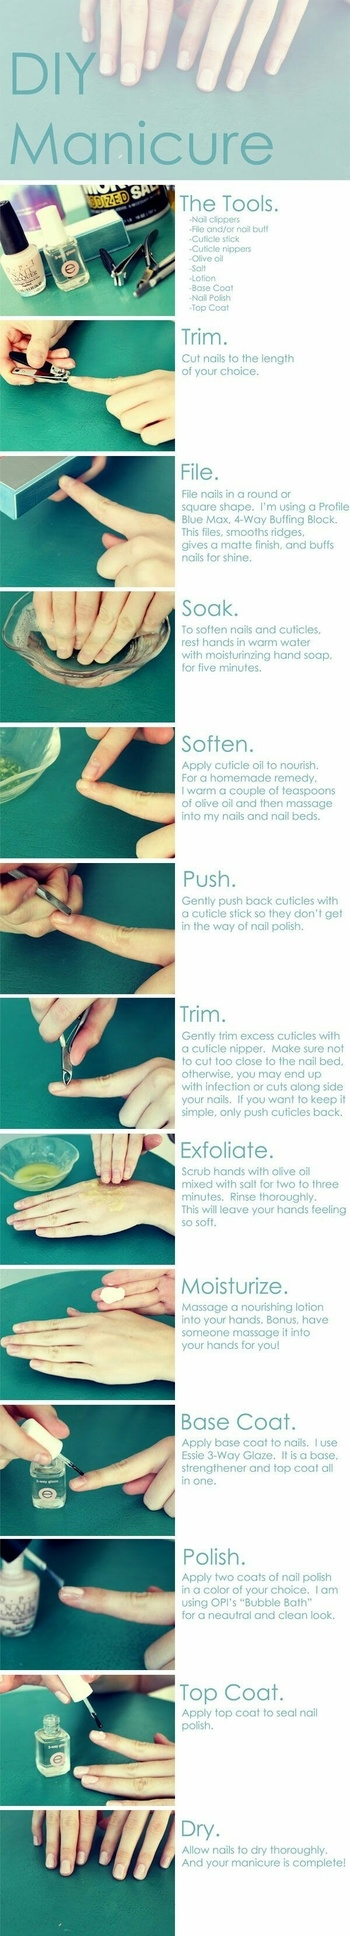 Easy home manicure trick 💅